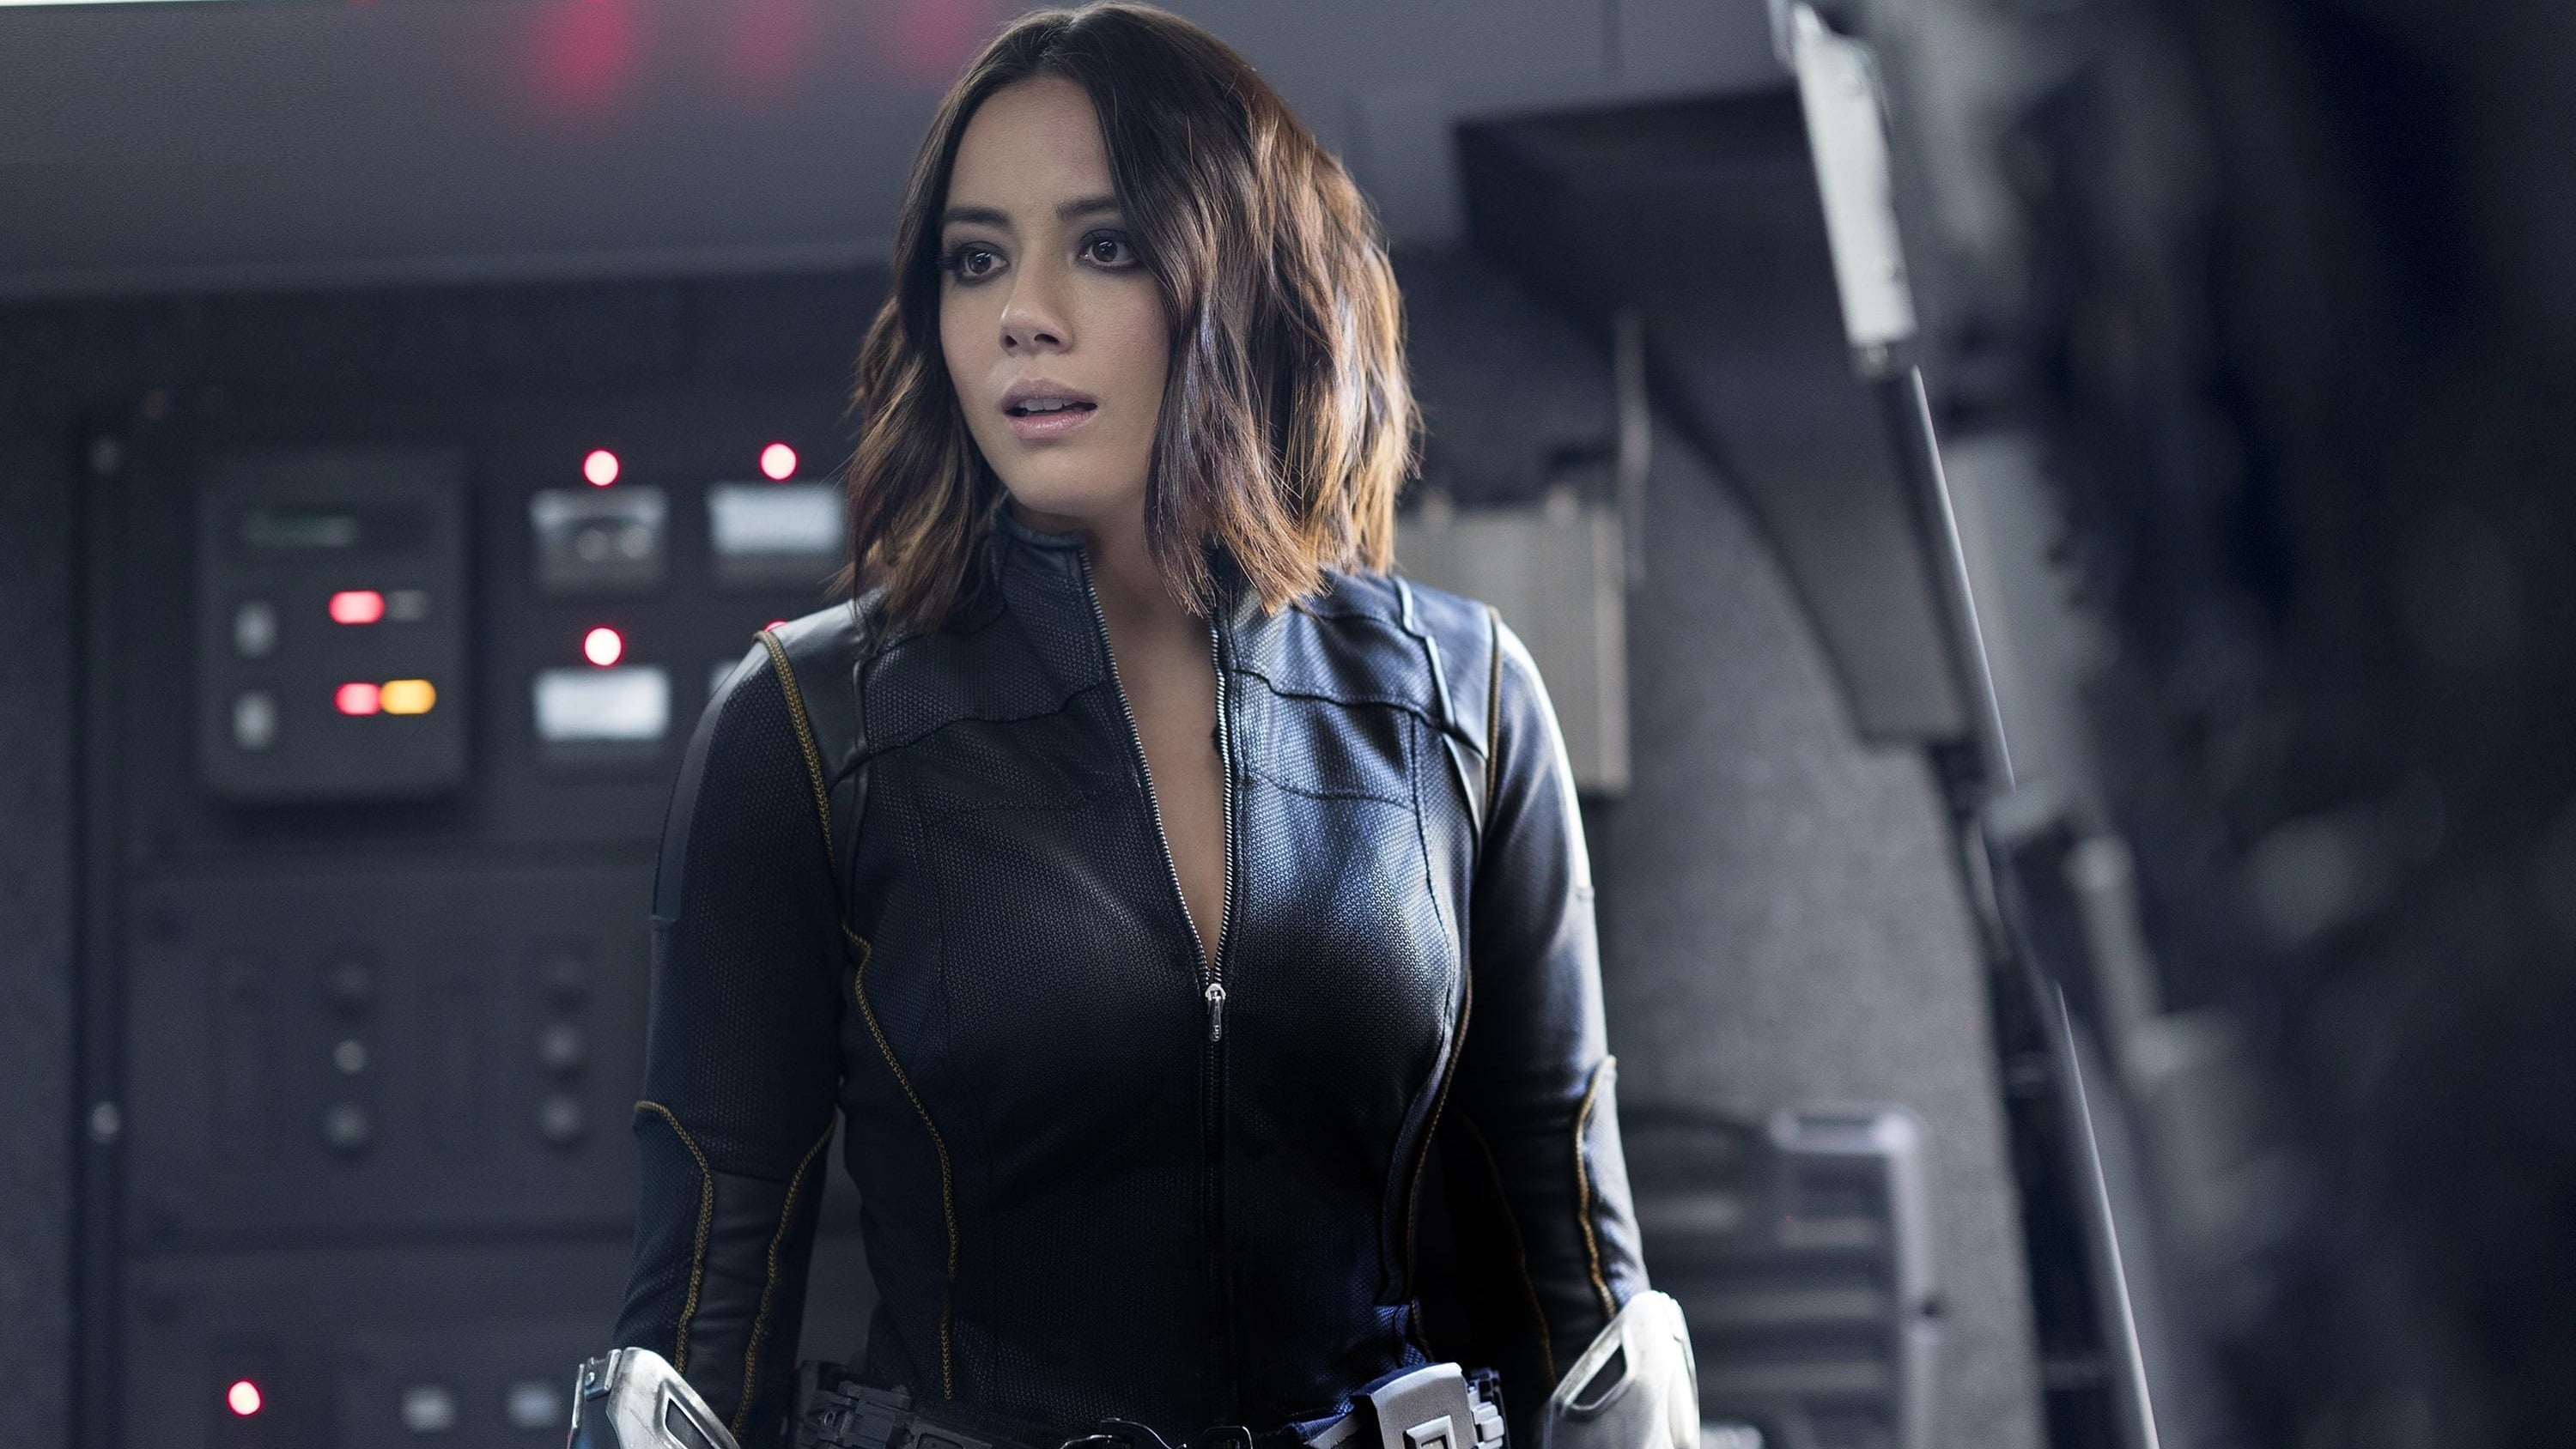 Marvel's Agents of S.H.I.E.L.D. - Season 4 Episode 8 : The Laws of Inferno Dynamics